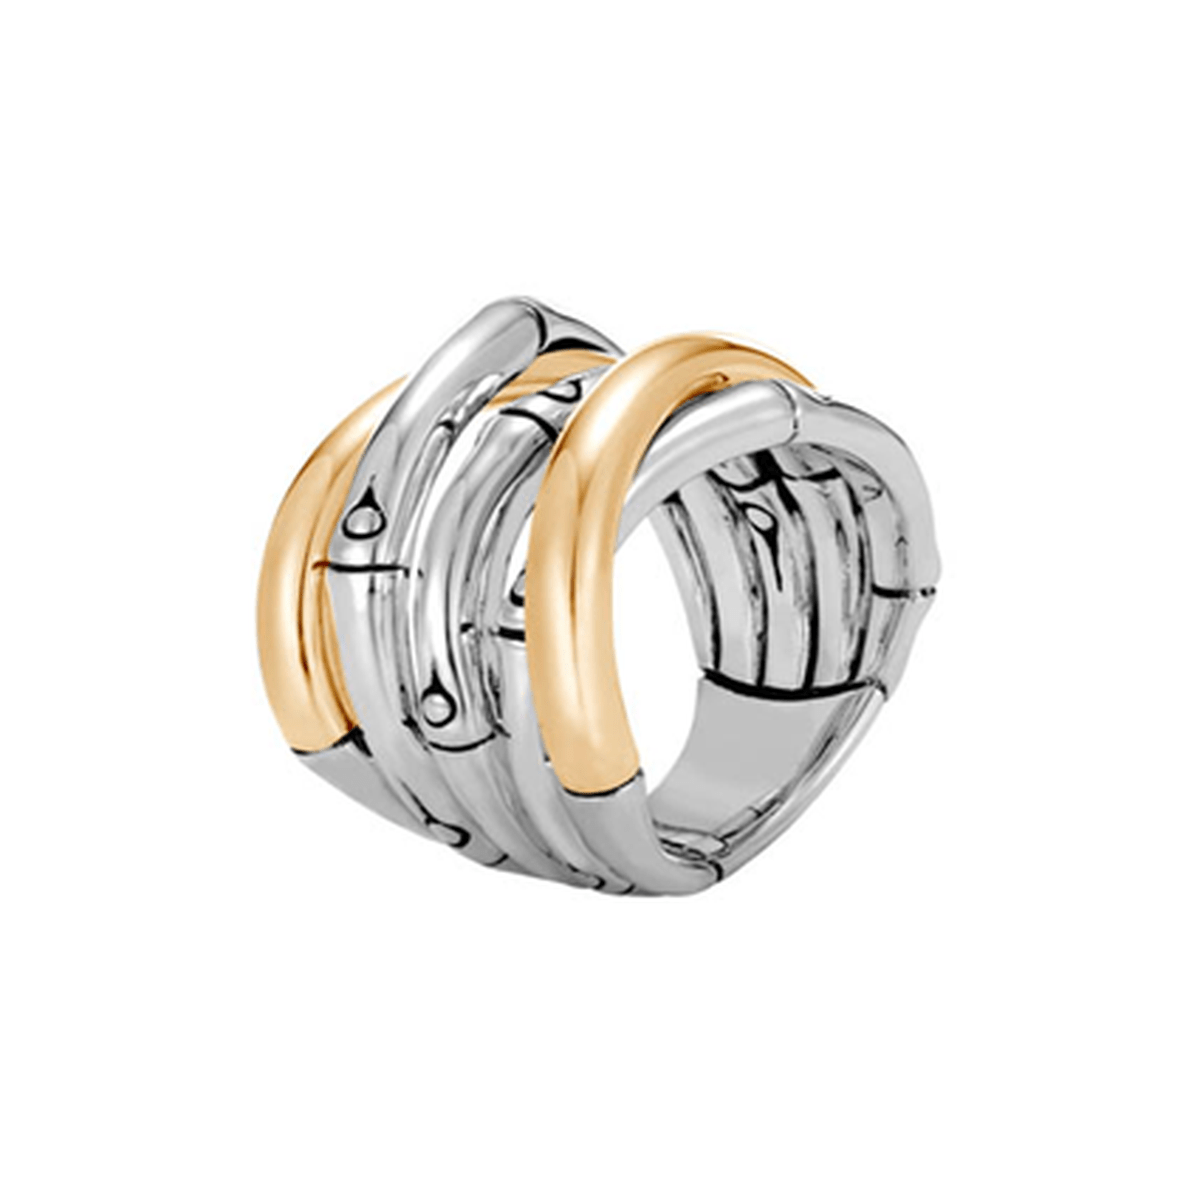 Bamboo Gold & Silver Ring - RZ57007